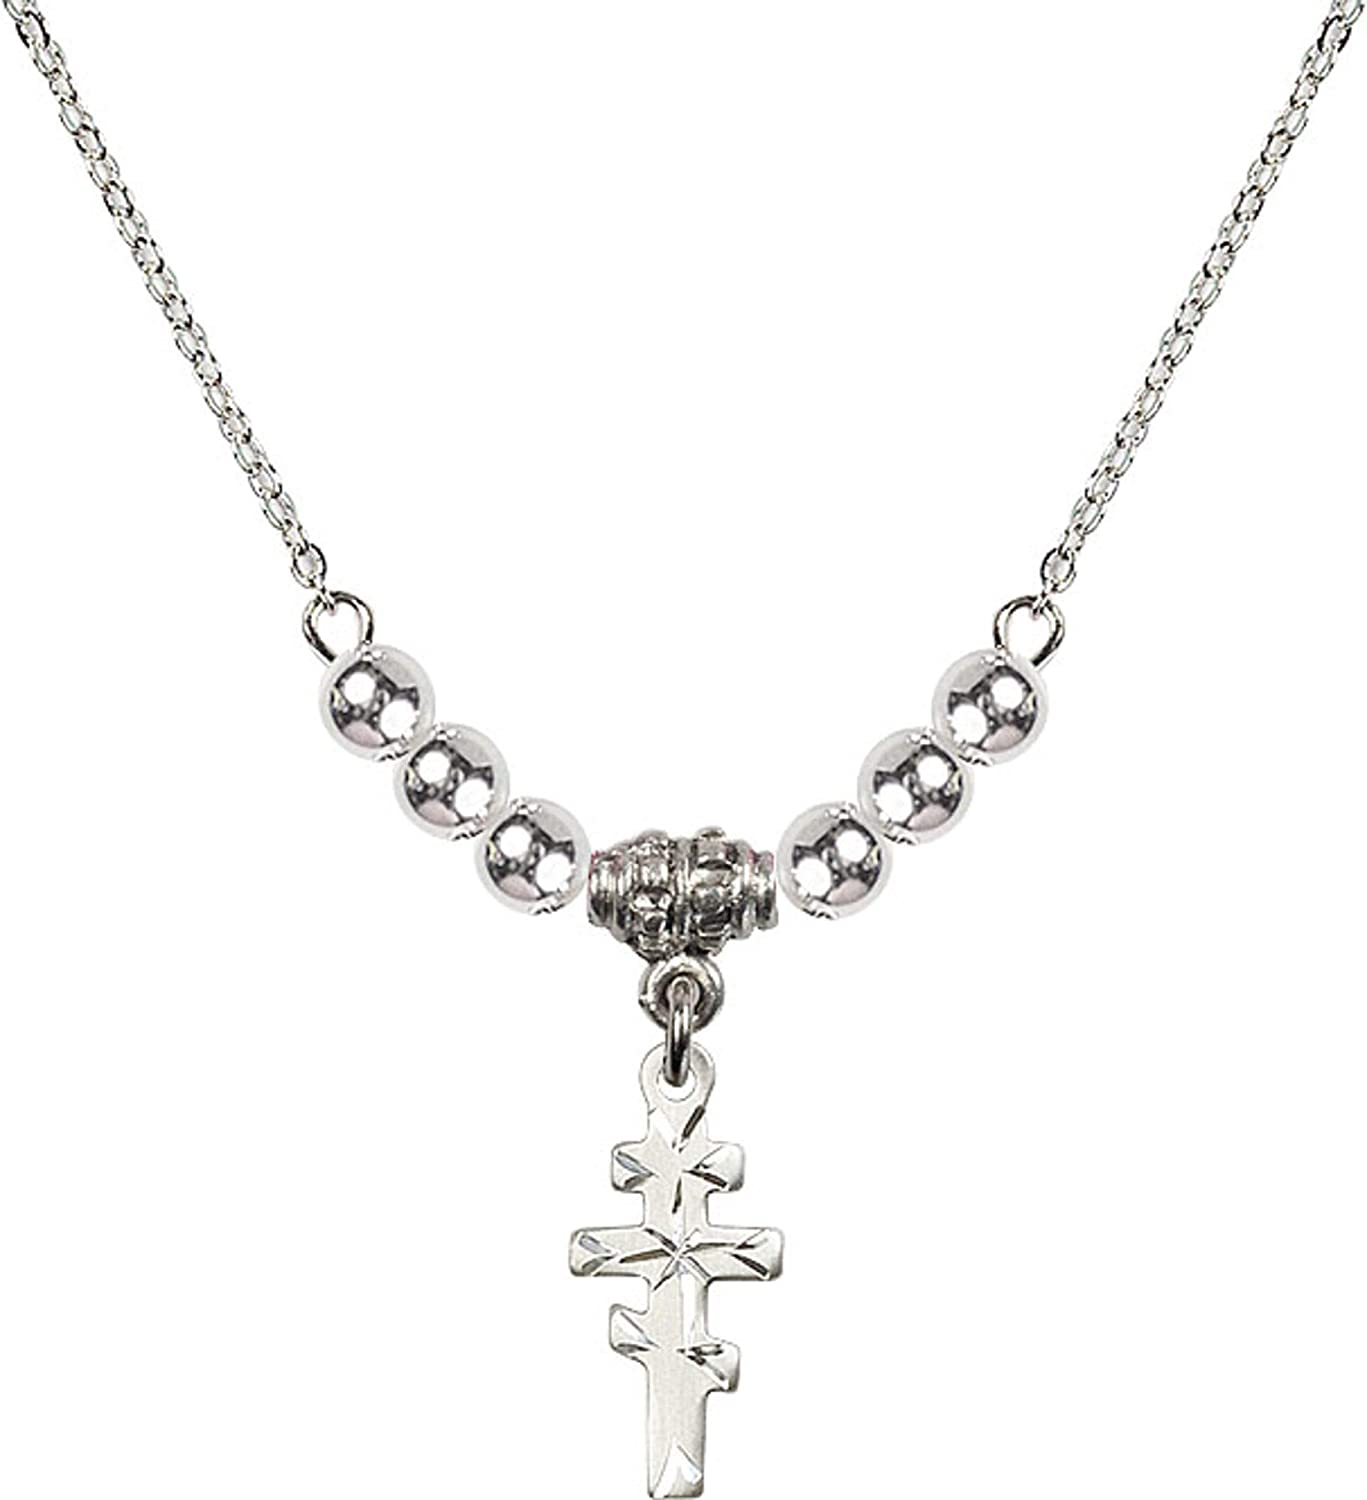 Bonyak Jewelry 18 Inch Rhodium Plated Necklace w// 4mm Sterling Silver Beads and Greek Orthadox Cross Charm